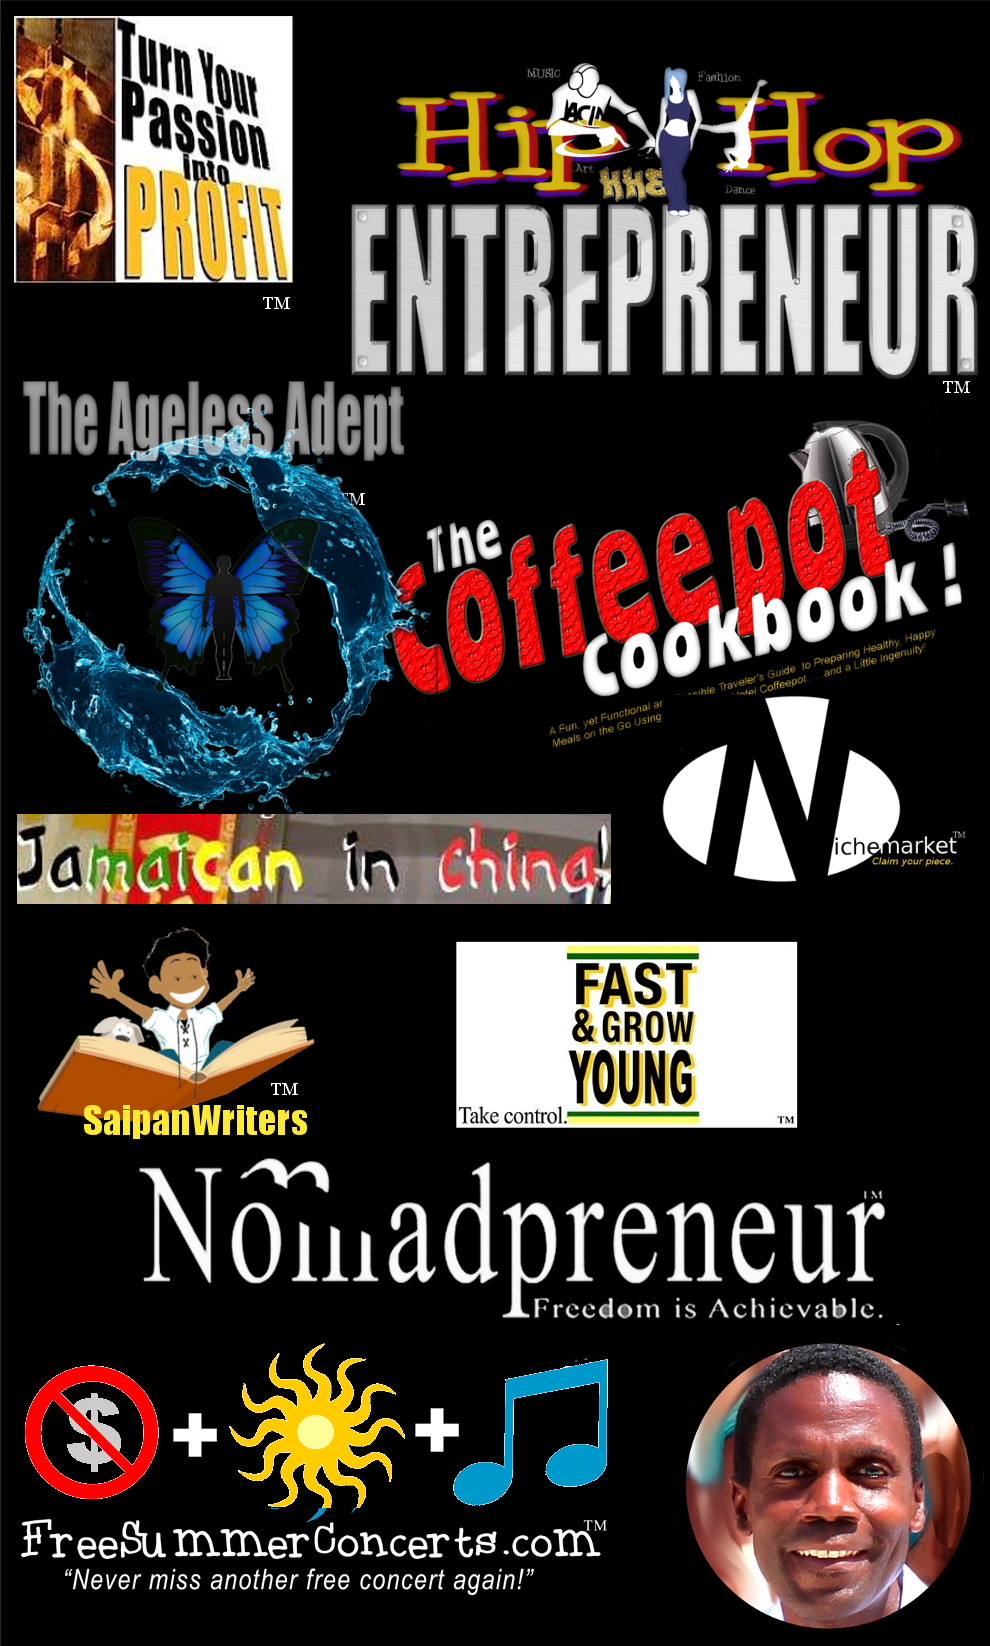 Brands & Books! - In the process of pursuing my passions, I've launched several brands each with a  unique website, and/or products designed to help others who share the same passions, interests or hobbies.  Whether you're a HipHopEntrepreneur™, Nomadpreneur™, lover of inspirational LifeRhymes™, a  SaipanWriter™, GuamWriter or interested in SaipanLiving™ or simply love to attend FreeSummerConcerts™, I've created a dedicated site for each one!